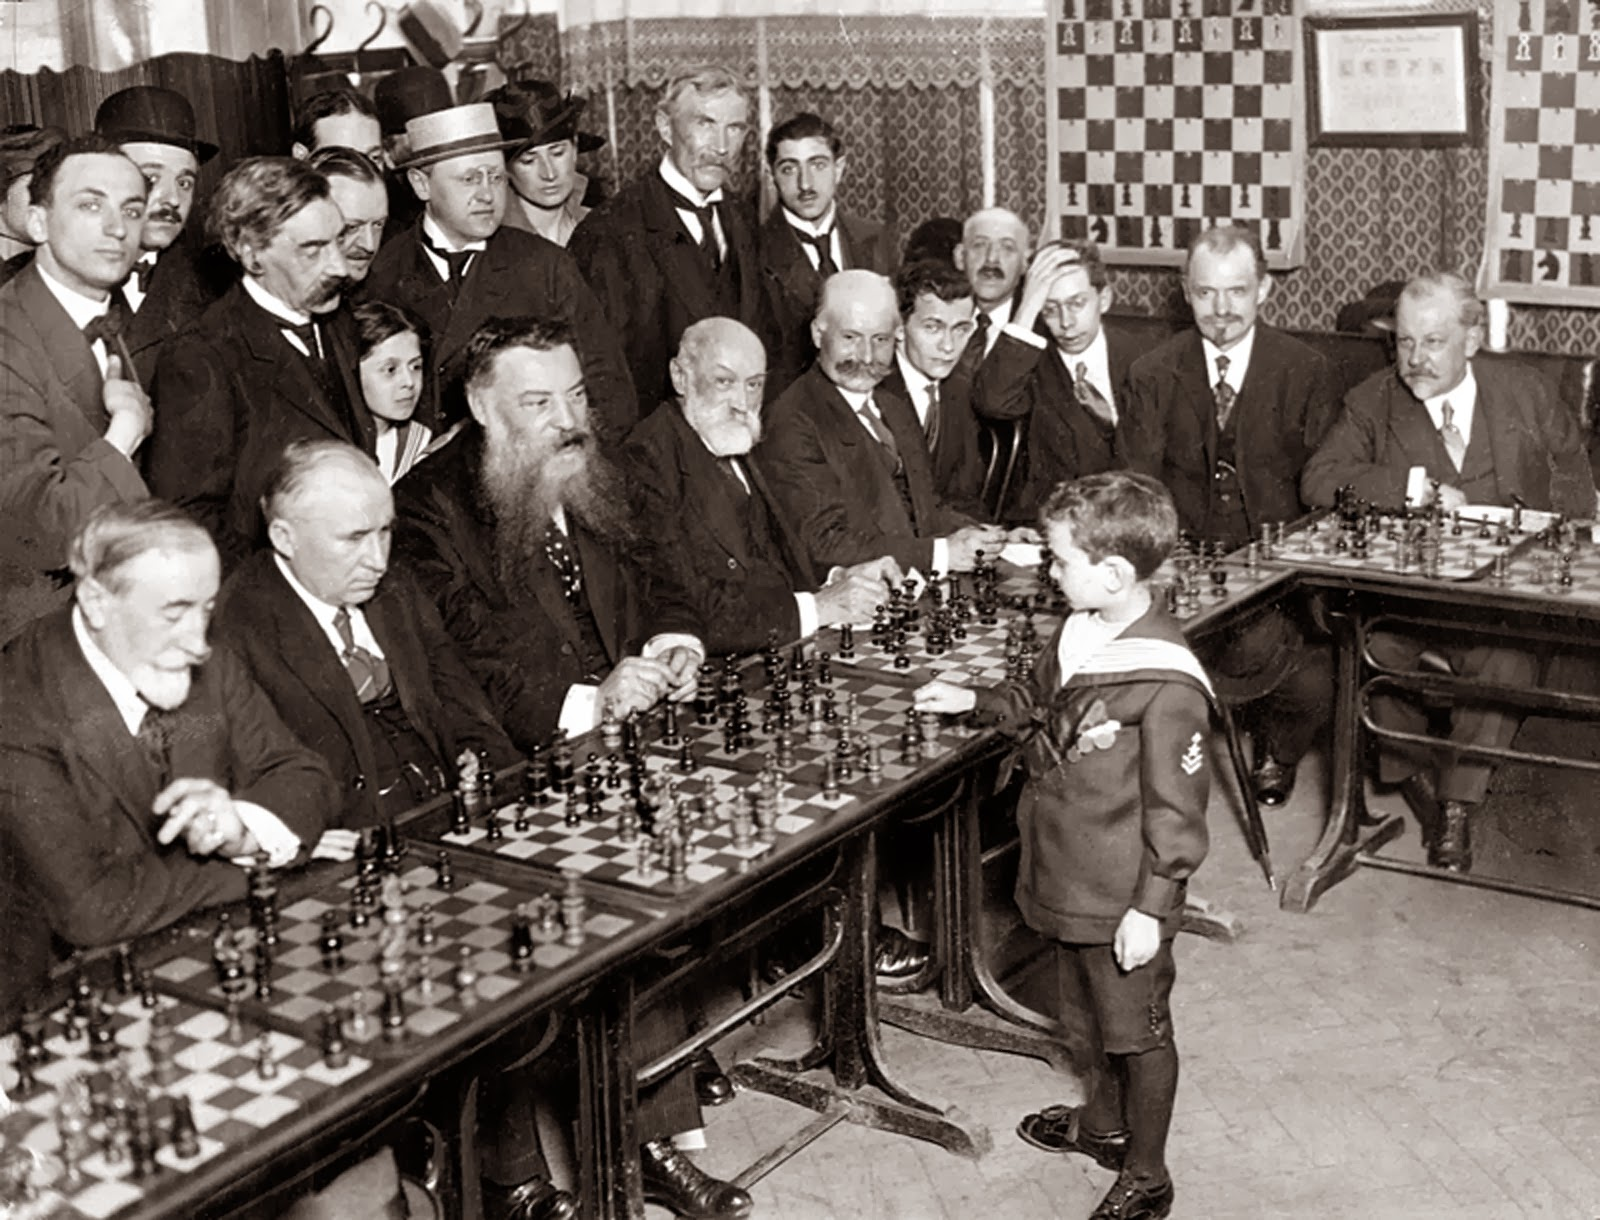 56+-+Samuel+Reshevsky+age+8+defeating+several+chess+masters+at+once+in+France+1920 - Chess Wiz - Weird and Extreme